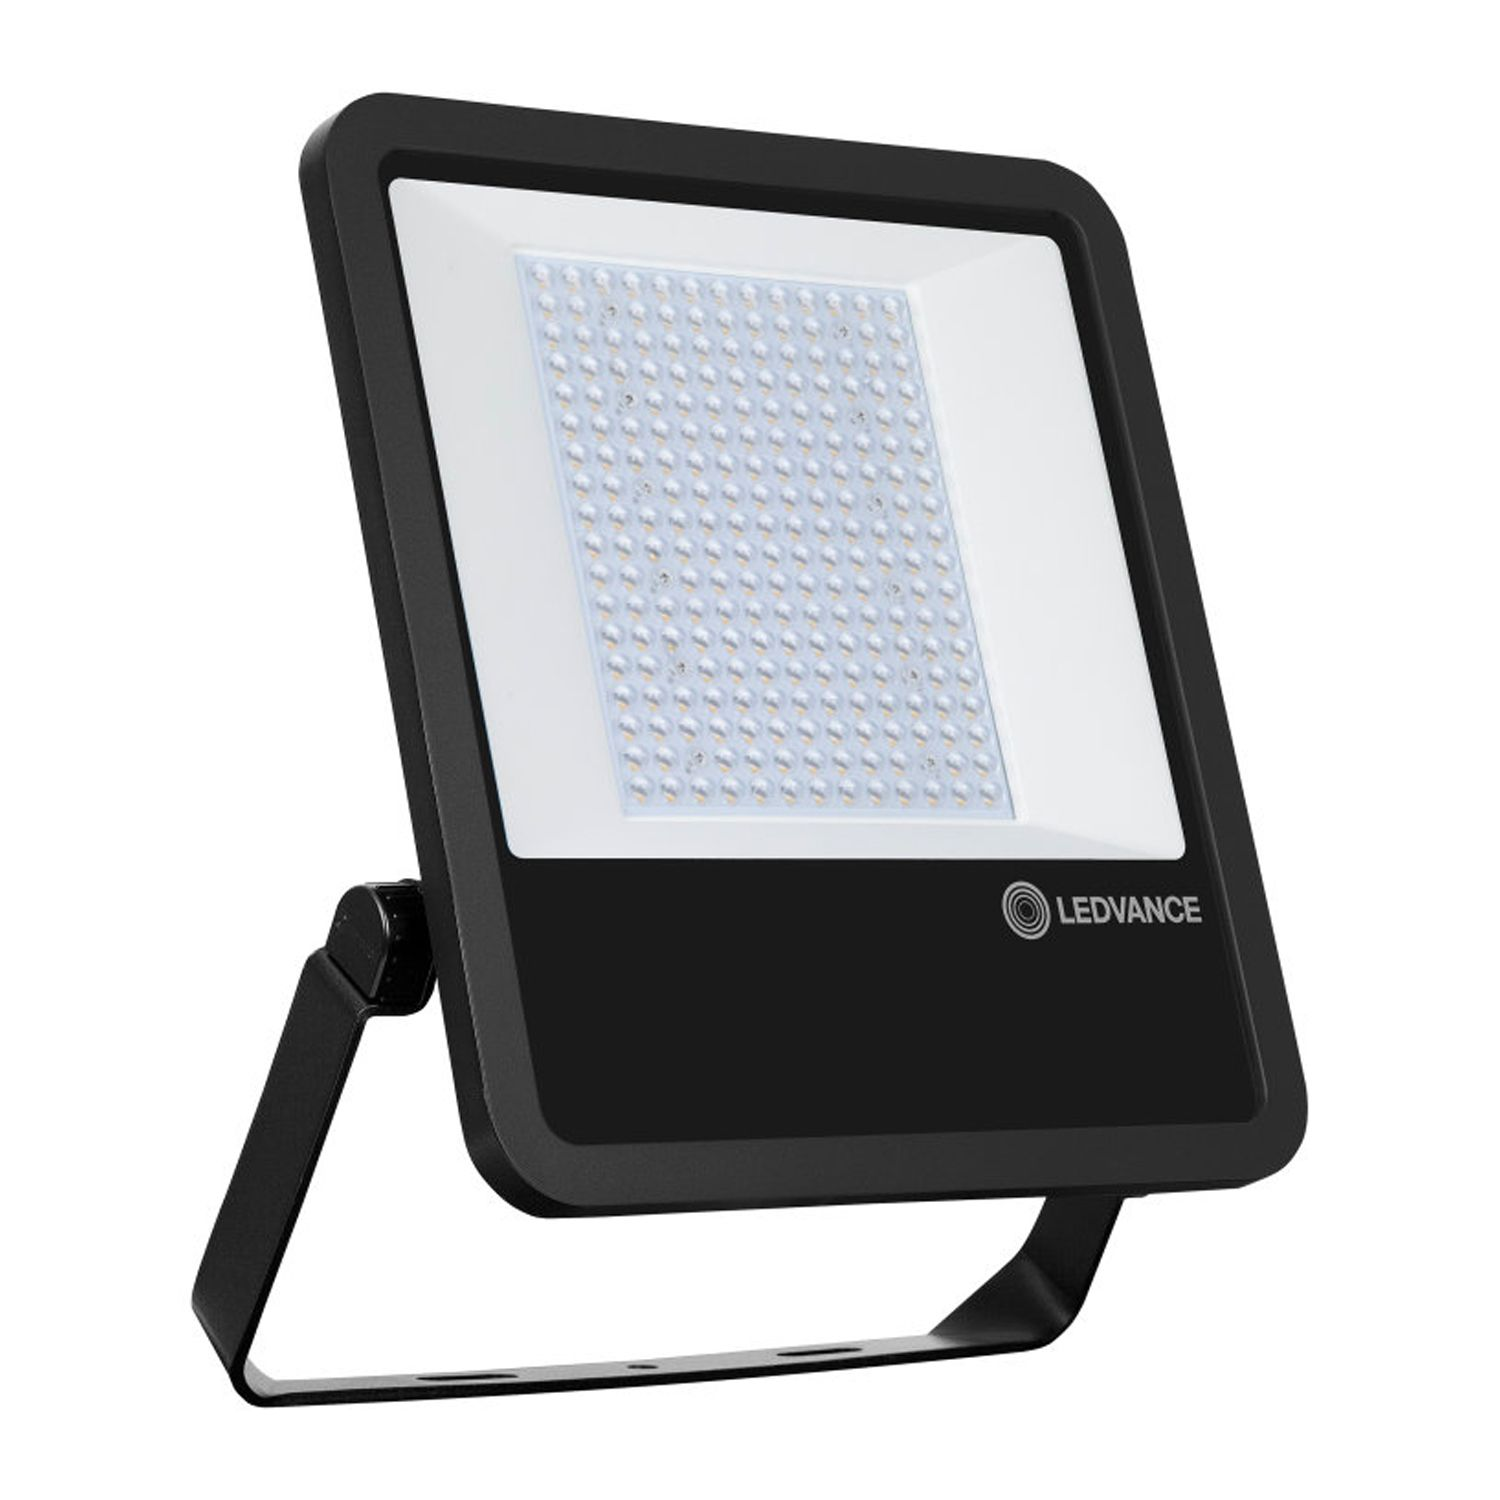 Ledvance LED Floodlight Area 145W 3000K 18400lm IP65 | Warm White